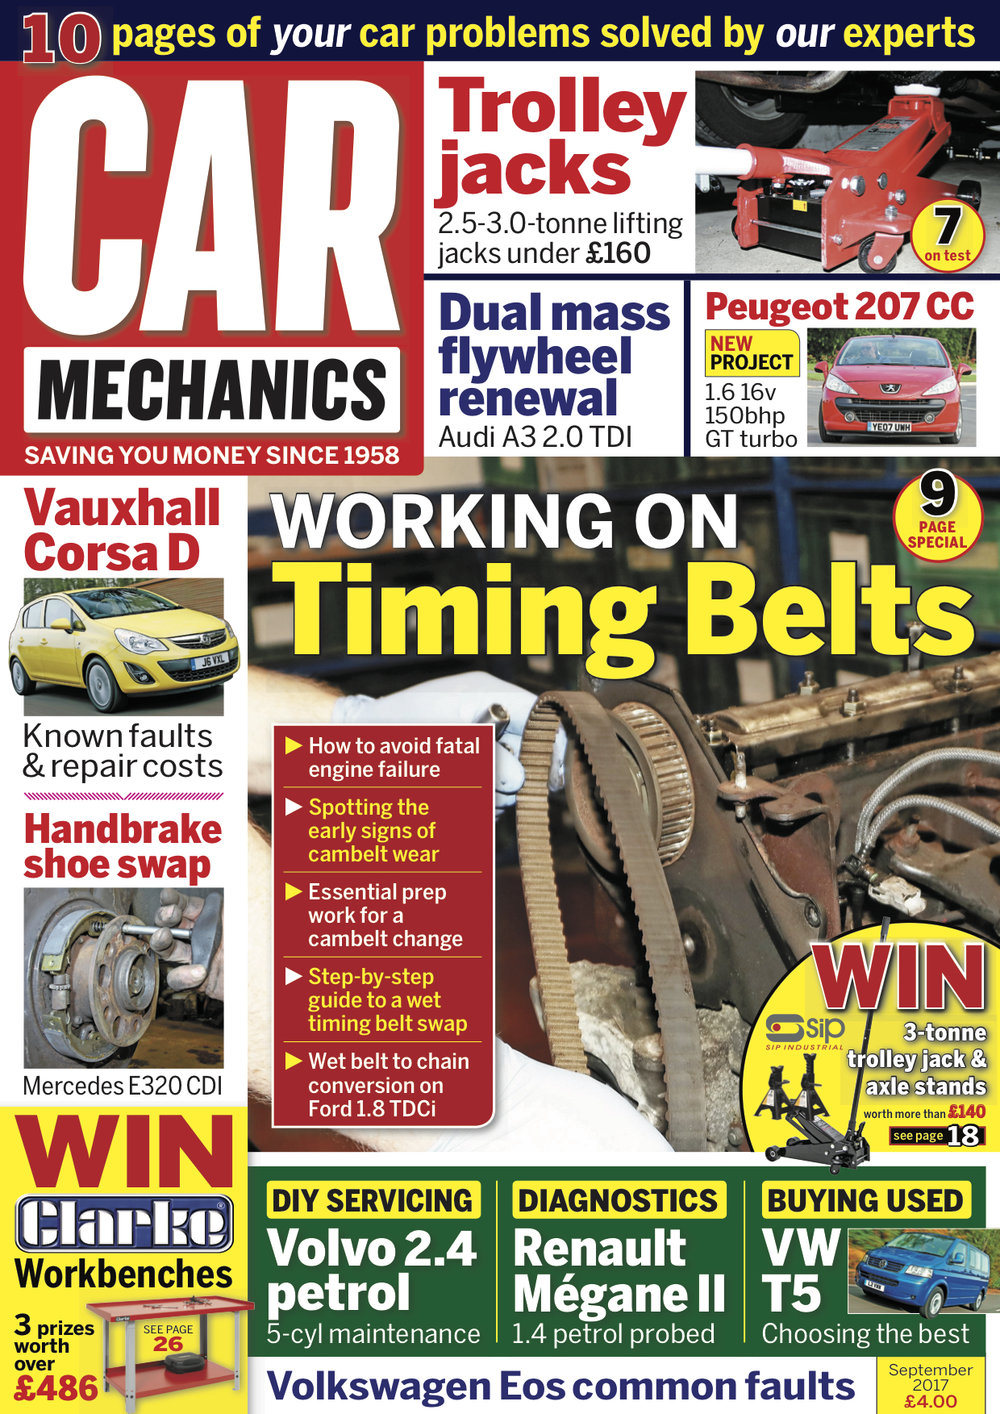 Latest Issue Car Mechanics Kia Sportage 2 0 Td Wiring Diagram Welcome To The September Of Our Main Feature This Month Looks At Timing Belts And Shows You How Keep Yours In Top Condition